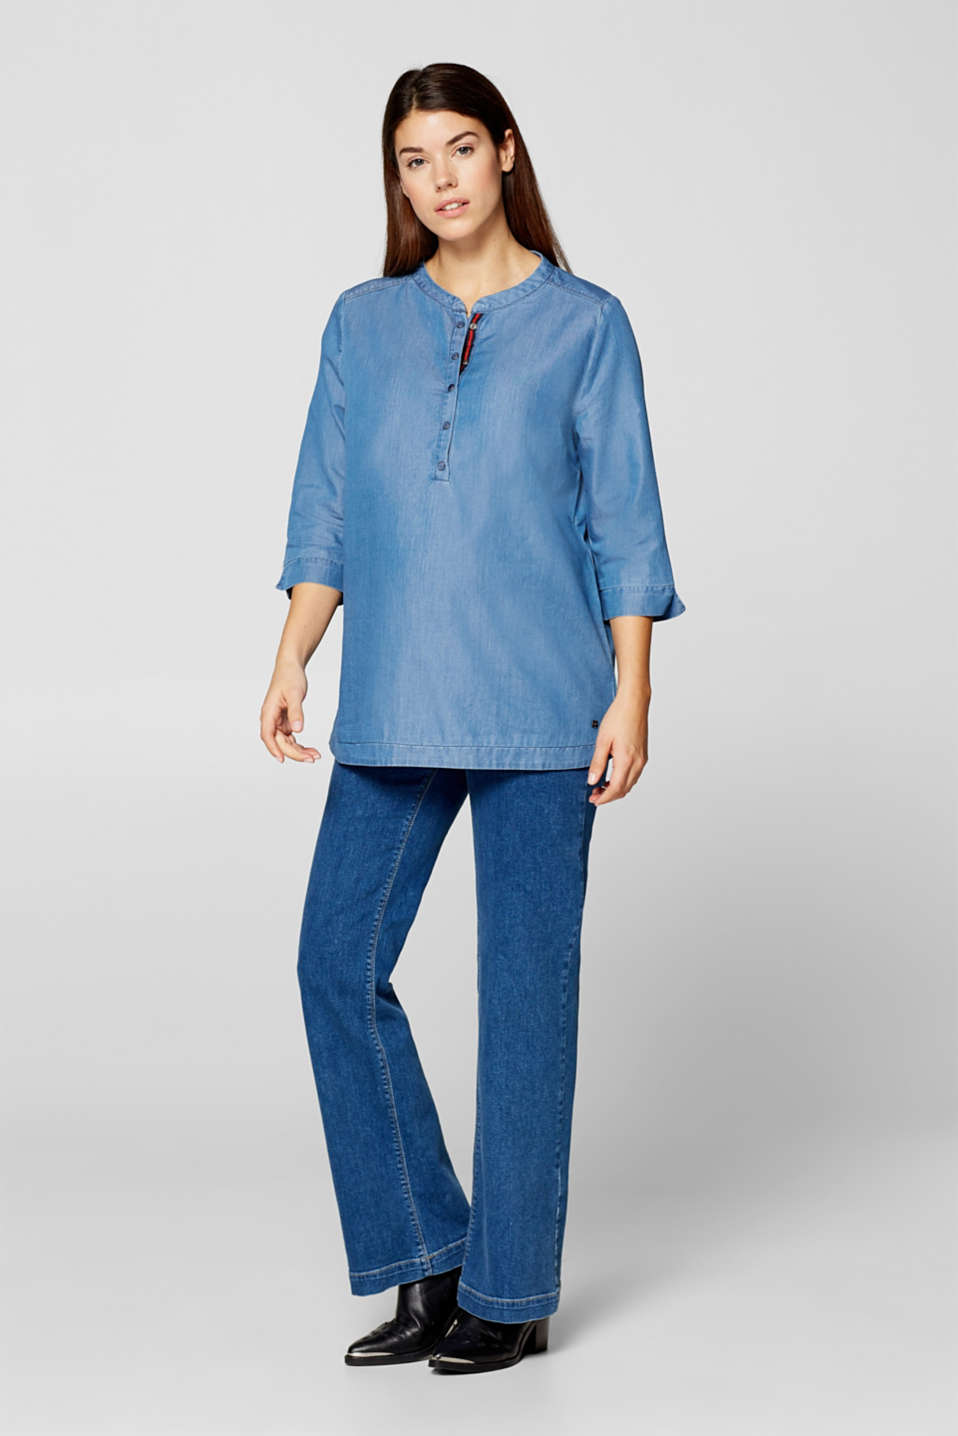 Denim blouse with three-quarter length sleeves, LCBRIGHT BLUE, detail image number 1